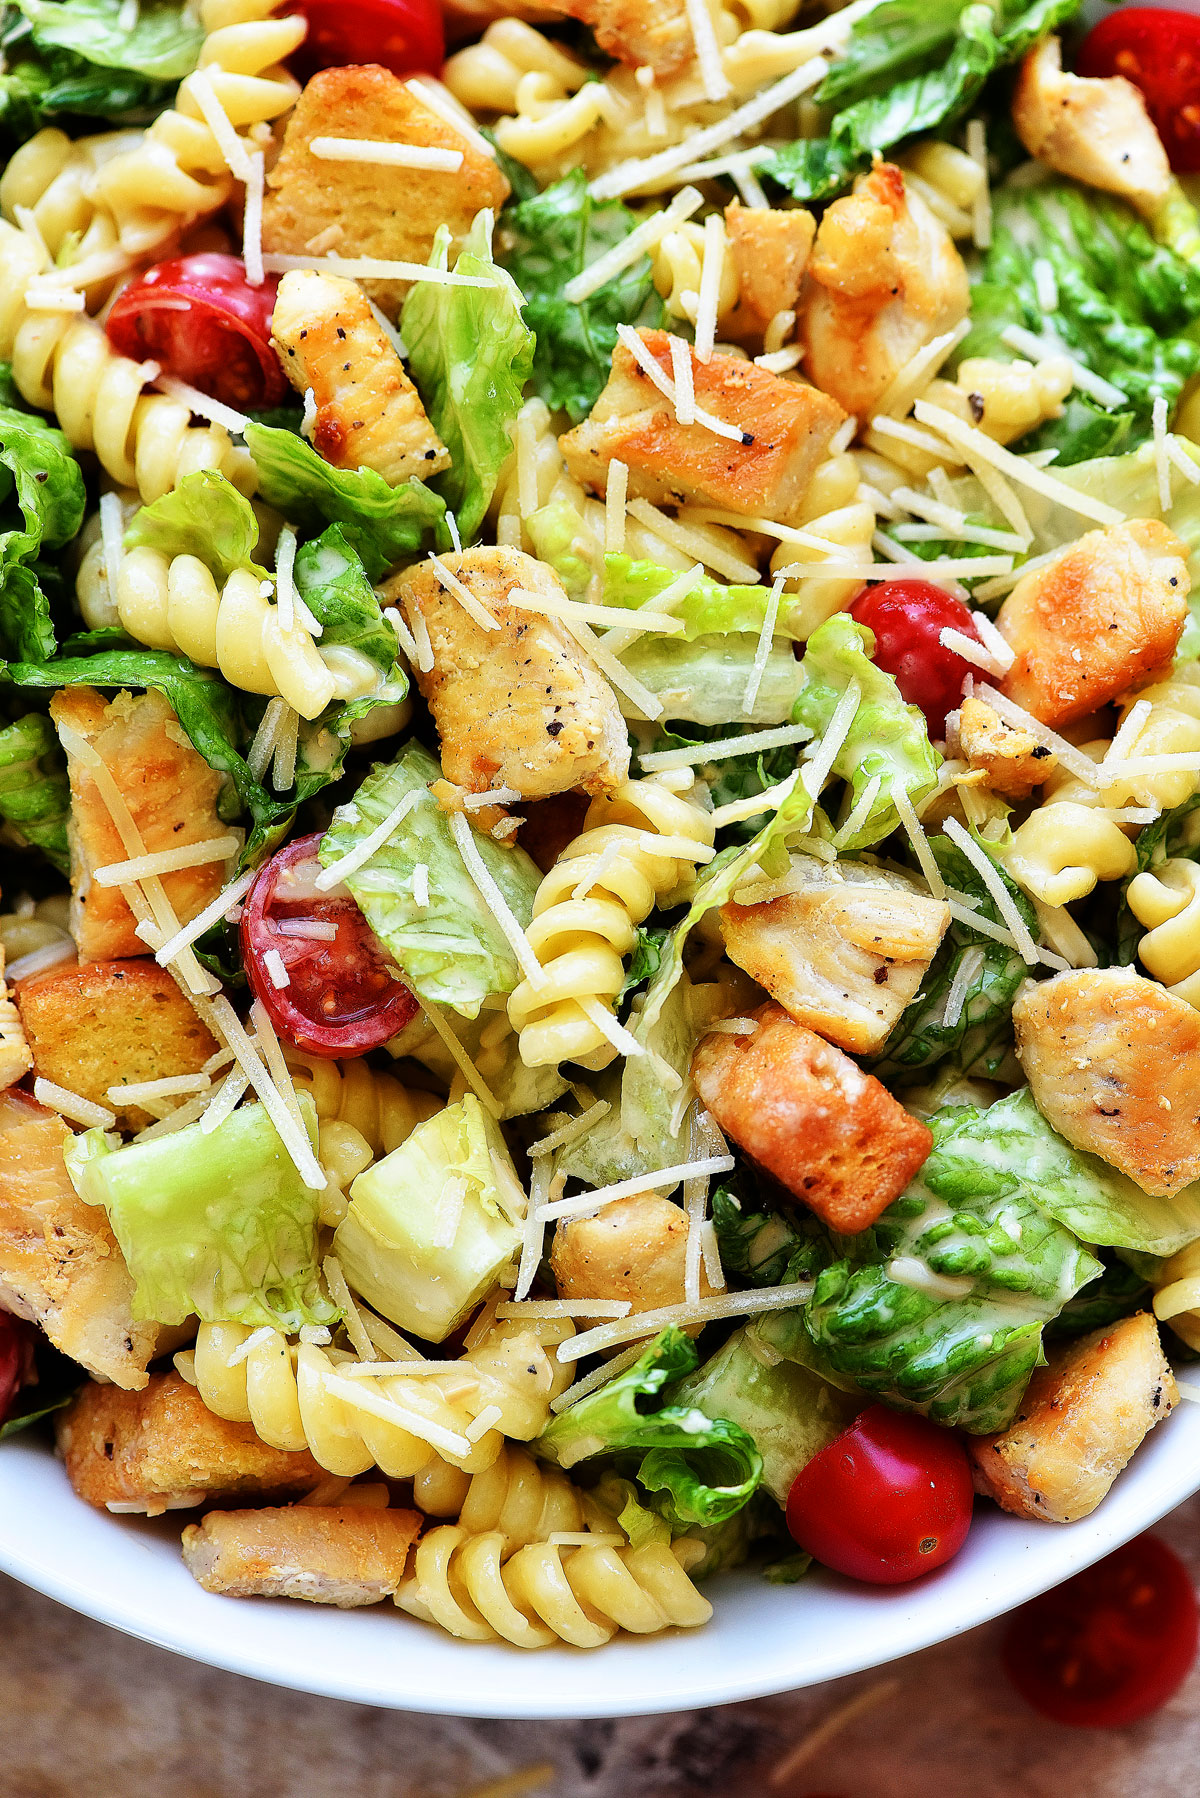 Chicken Caesar Pasta Salad is filled with grilled chicken, rotini pasta, croutons and tomatoes over a bed of romaine lettuce. Life-in-the-Lofthouse.com